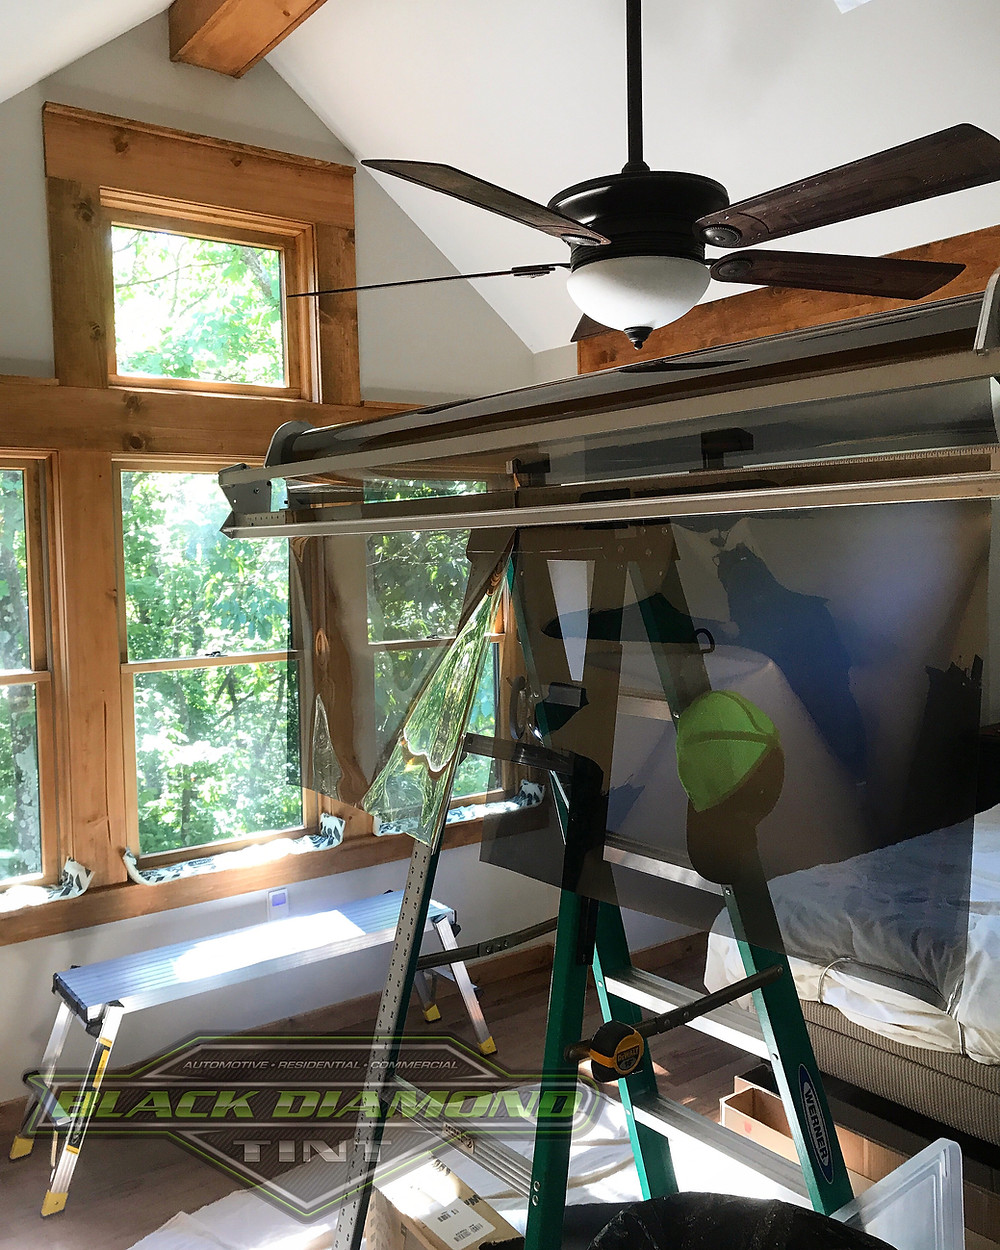 Cutting tint for windows in house